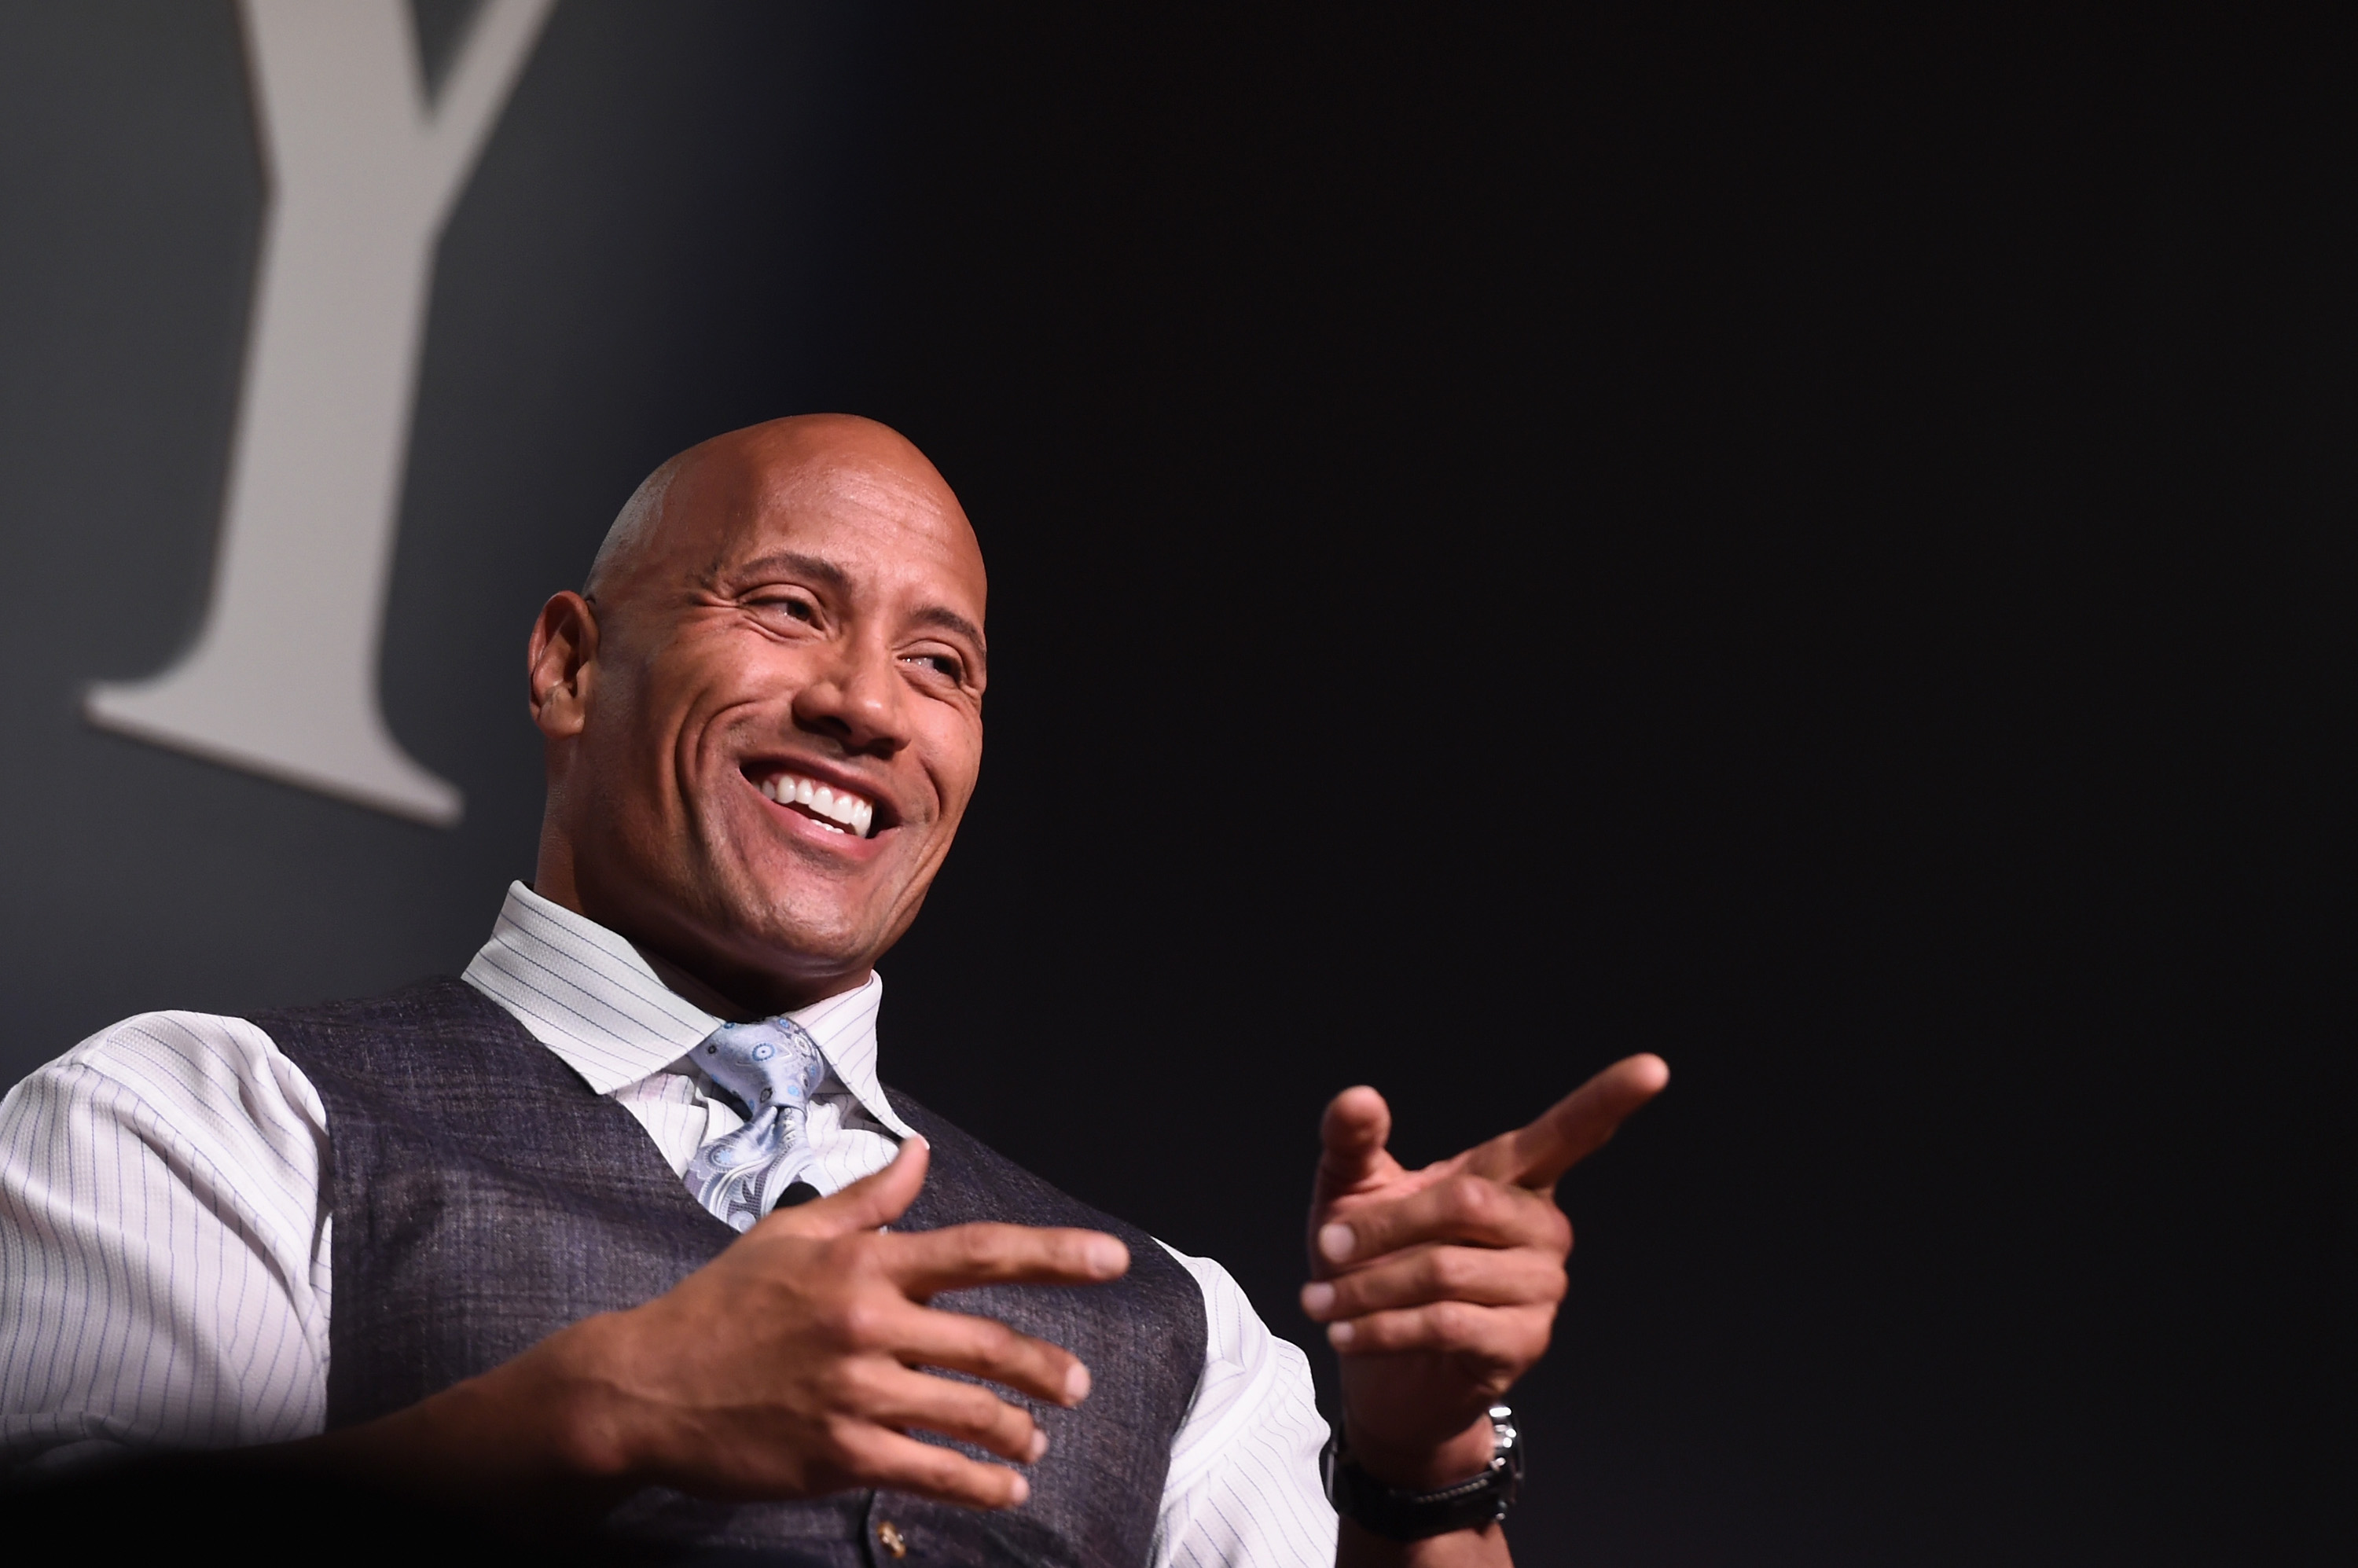 Actor Dwayne  The Rock  Johnson speaks onstage during 'The Next Intersection For Hollywood with William Morris Endeavor's Ari Emanuel, Patrick Whitesell and Dwayne  The Rock  Johnson' at the Fast Company Innovation Festival on November 9, 2015 in New York City.